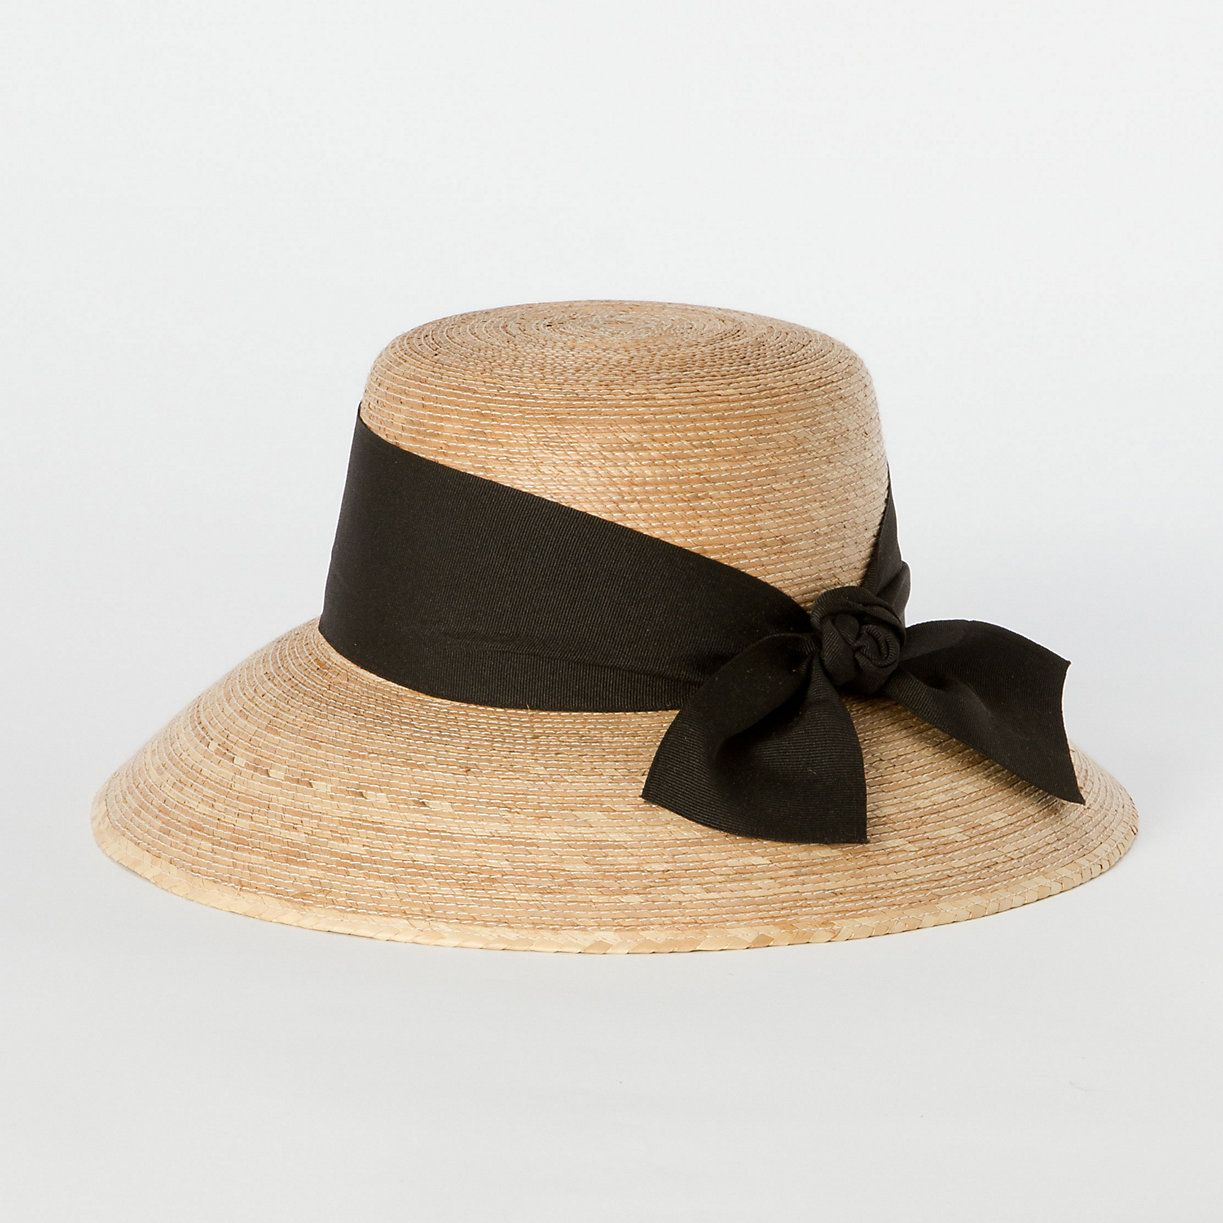 favorite weekly finds from around the web, including this Terrain Somerset Hat | glitterinc.com | @glitterinc